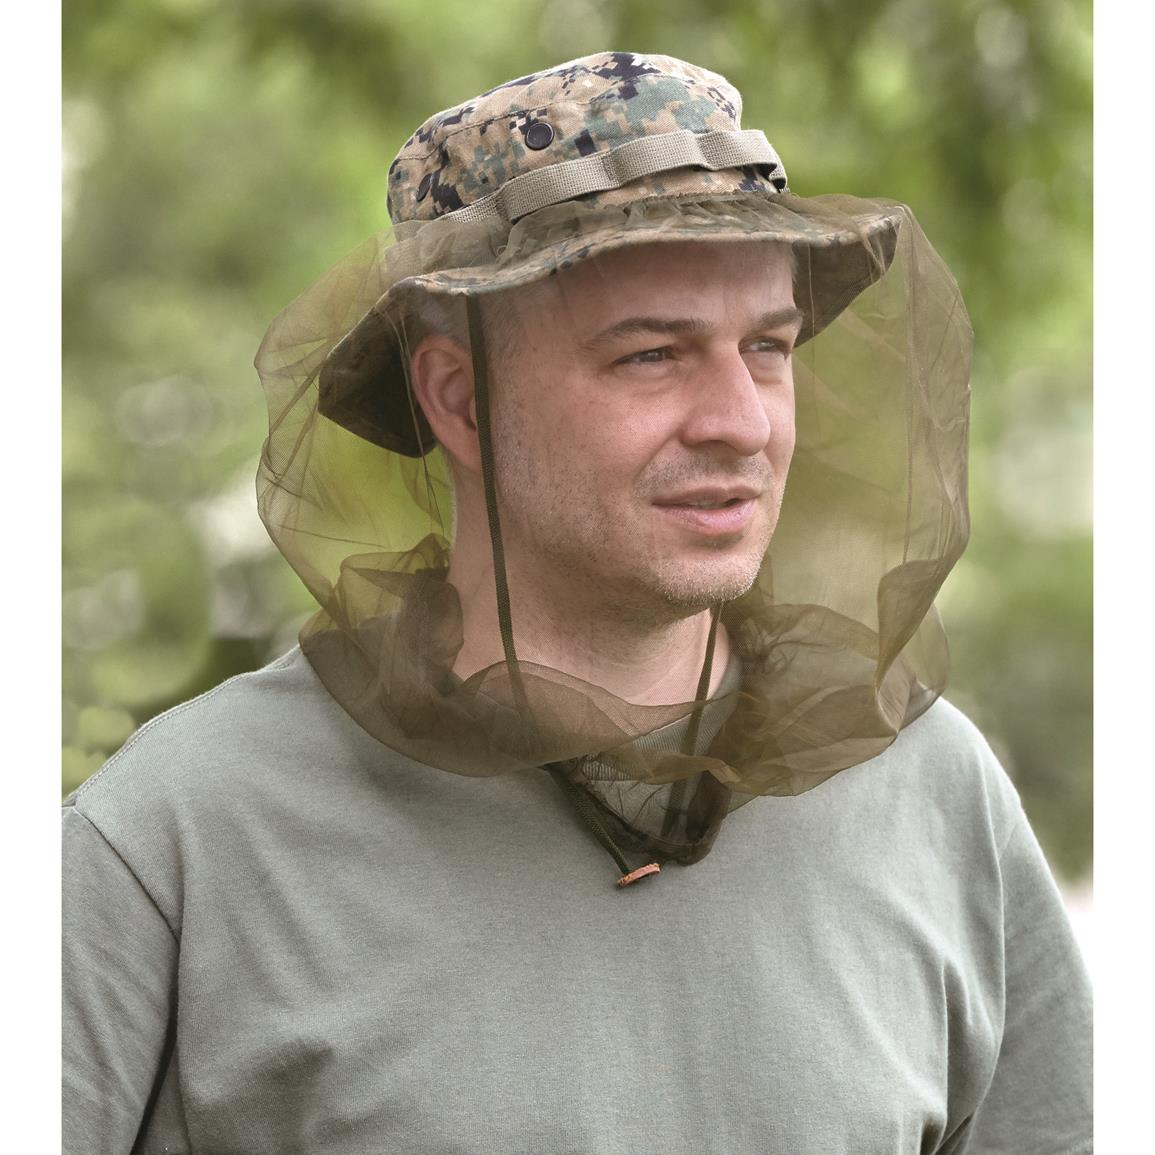 7bbe30b9d8aa8 U.S. Military Surplus Boonie Hat Mosquito Headnet · 100% polyester mesh  netting